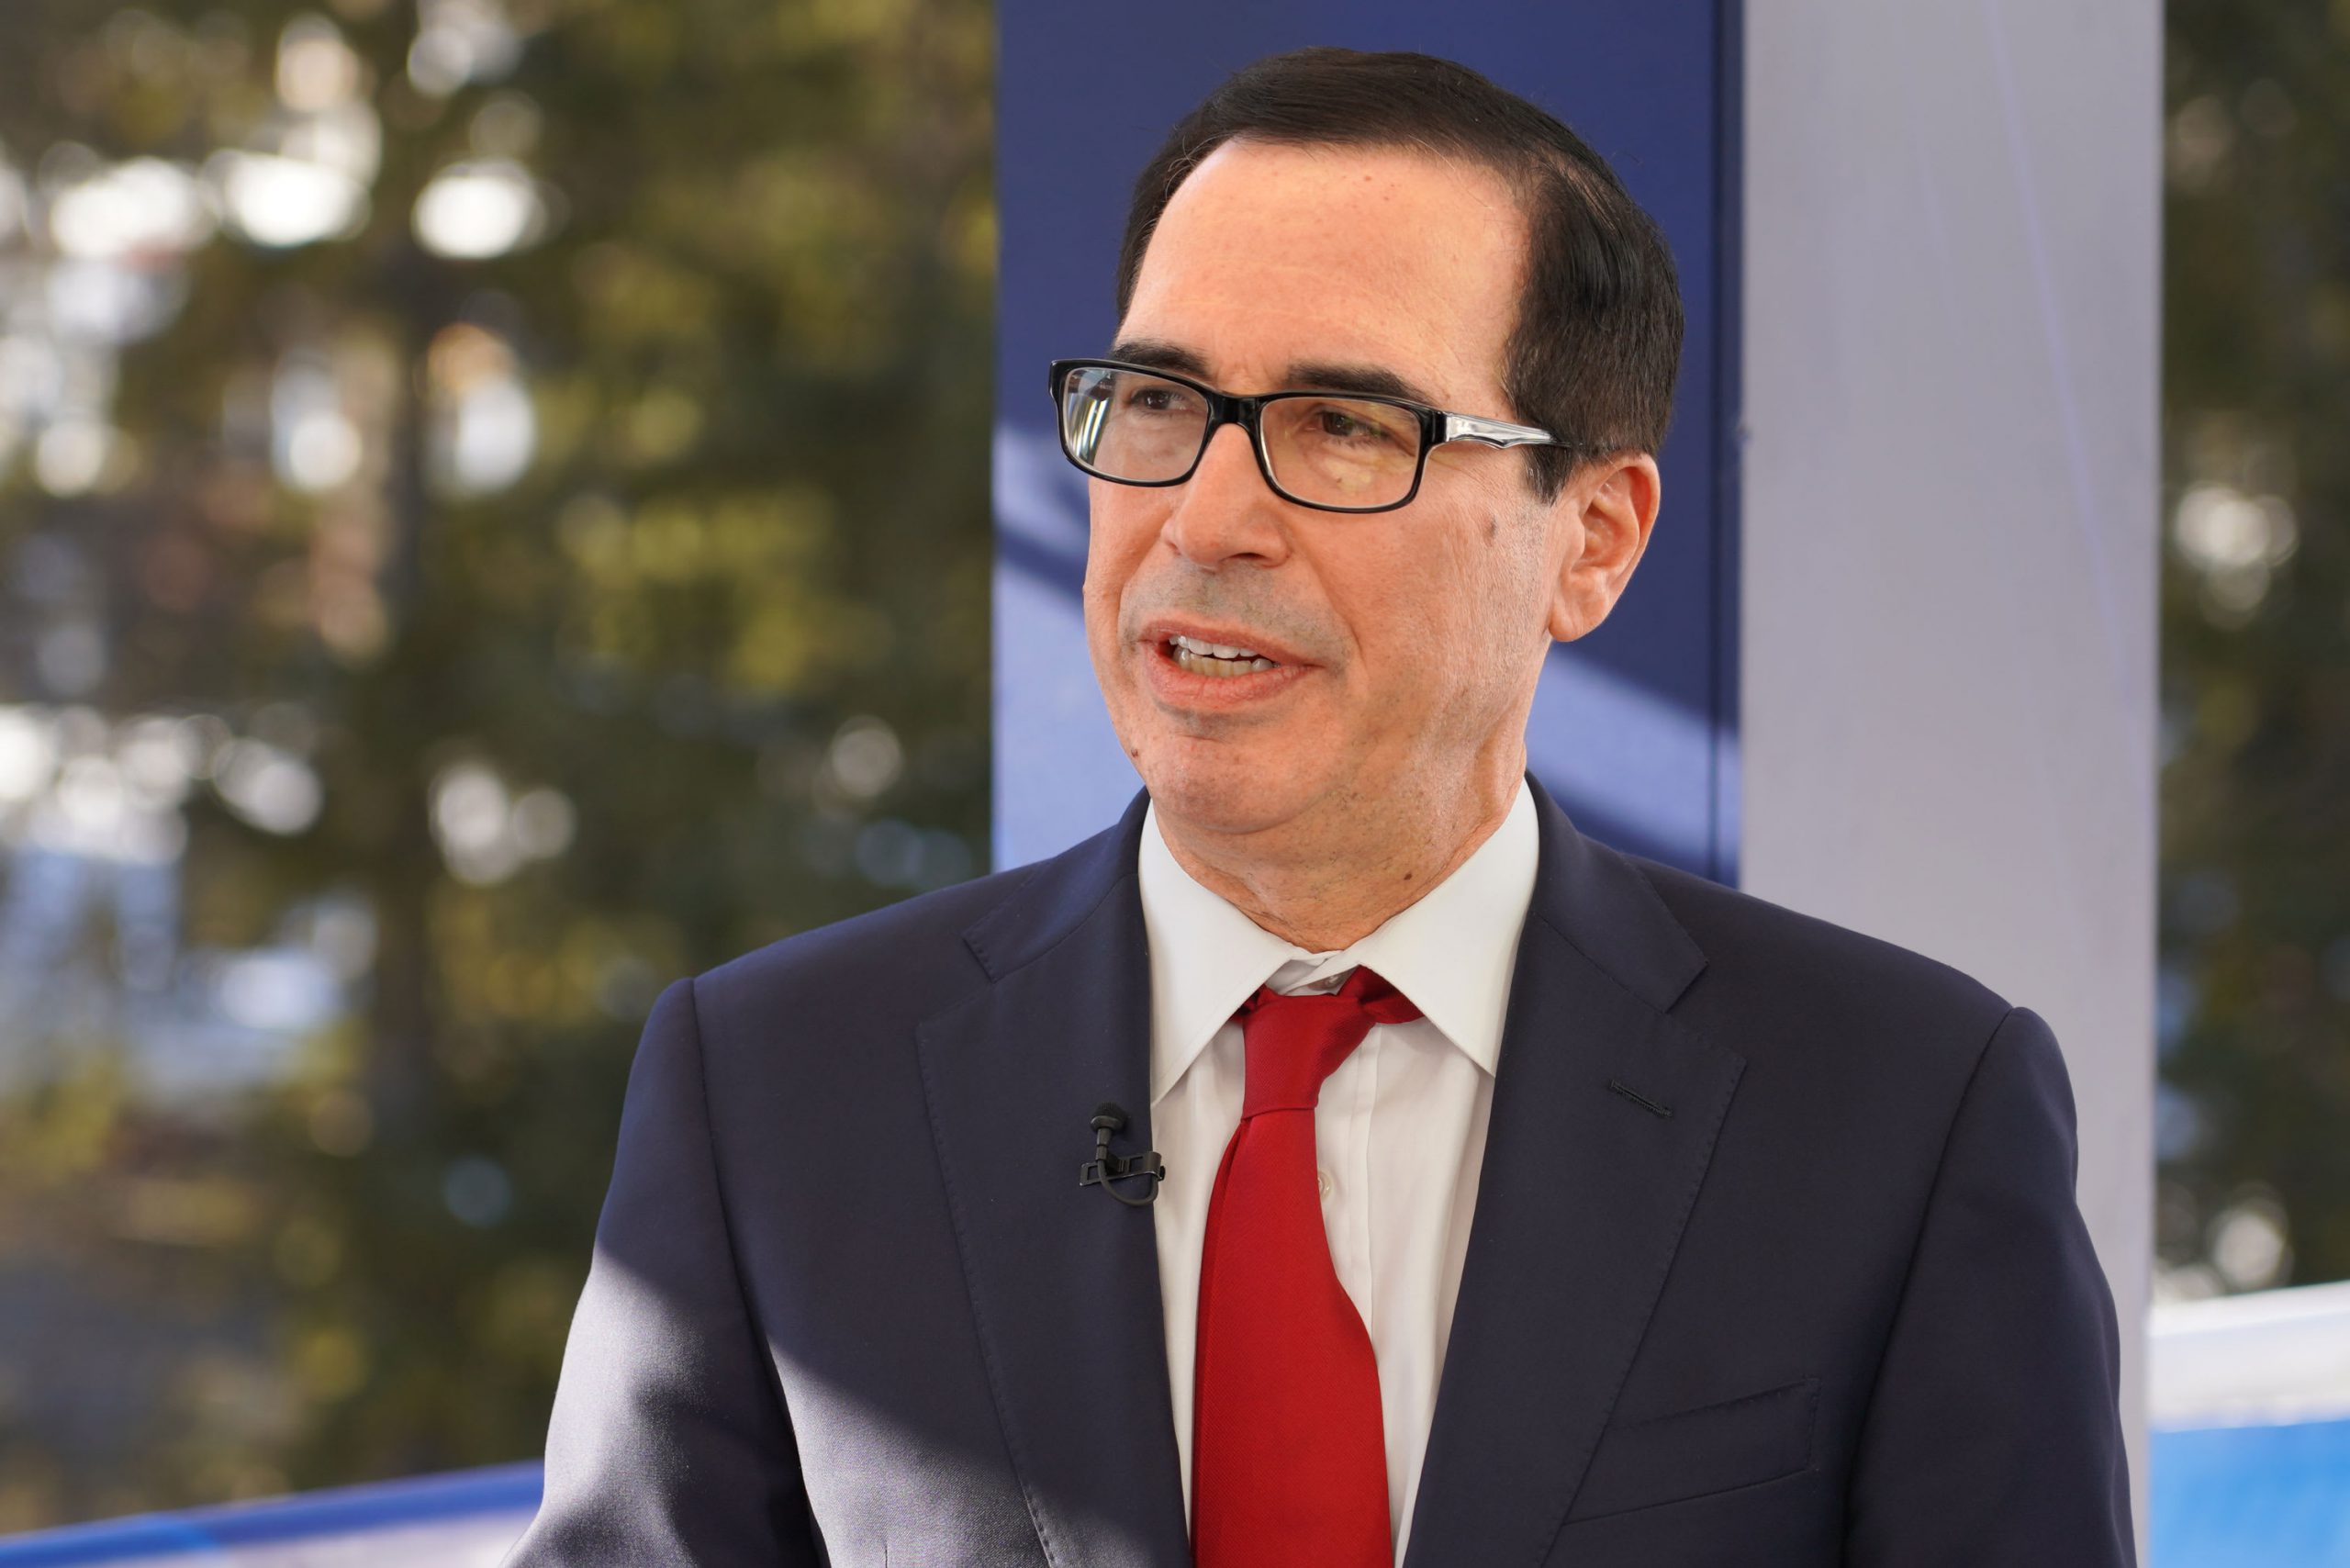 Financing programs for businesses hit by the coronavirus could amount to $4 trillion, Mnuchin says